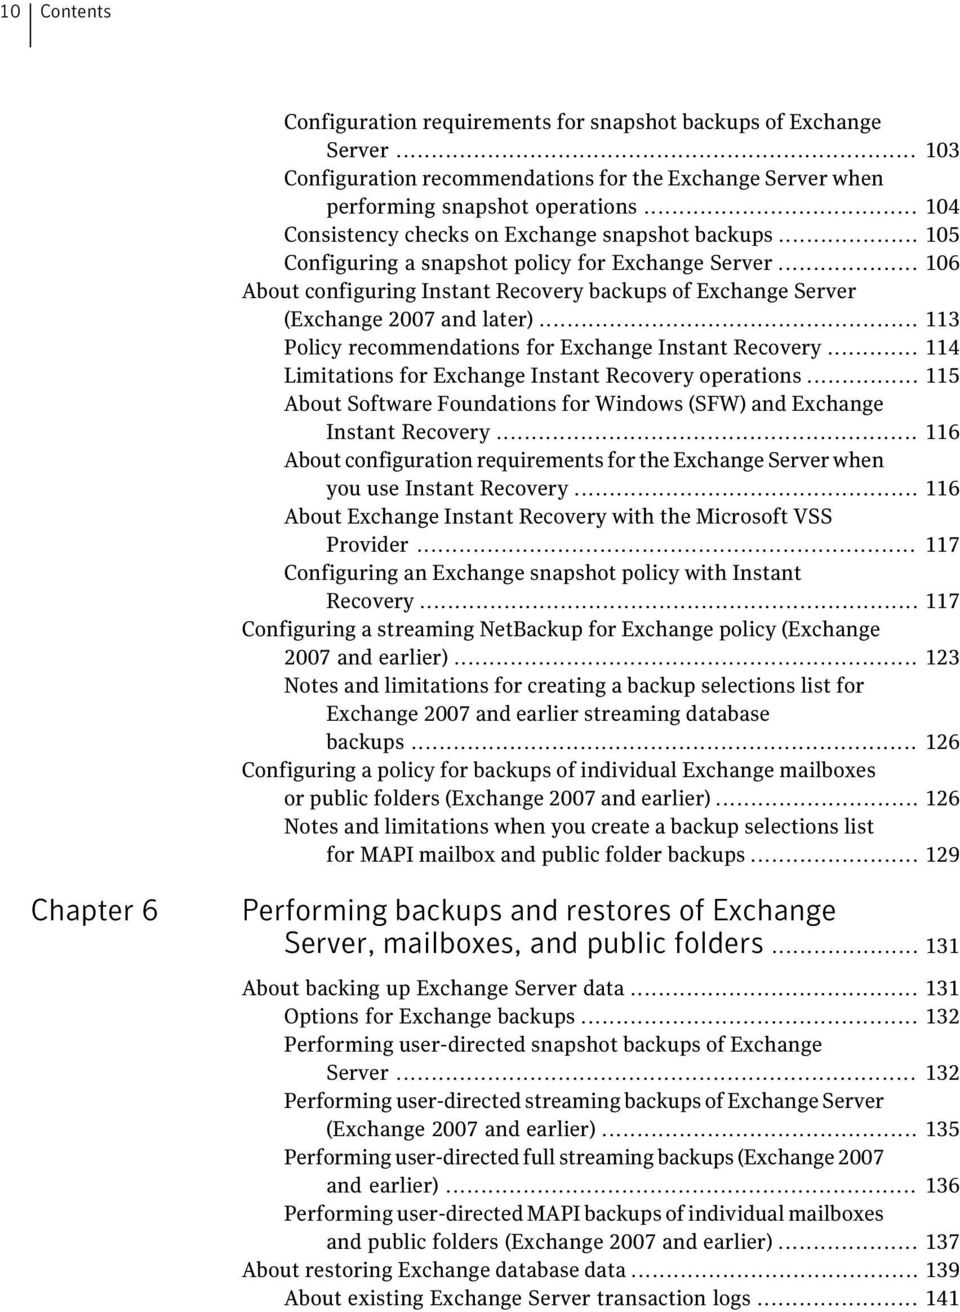 .. 106 About configuring Instant Recovery backups of Exchange Server (Exchange 2007 and later)... 113 Policy recommendations for Exchange Instant Recovery.